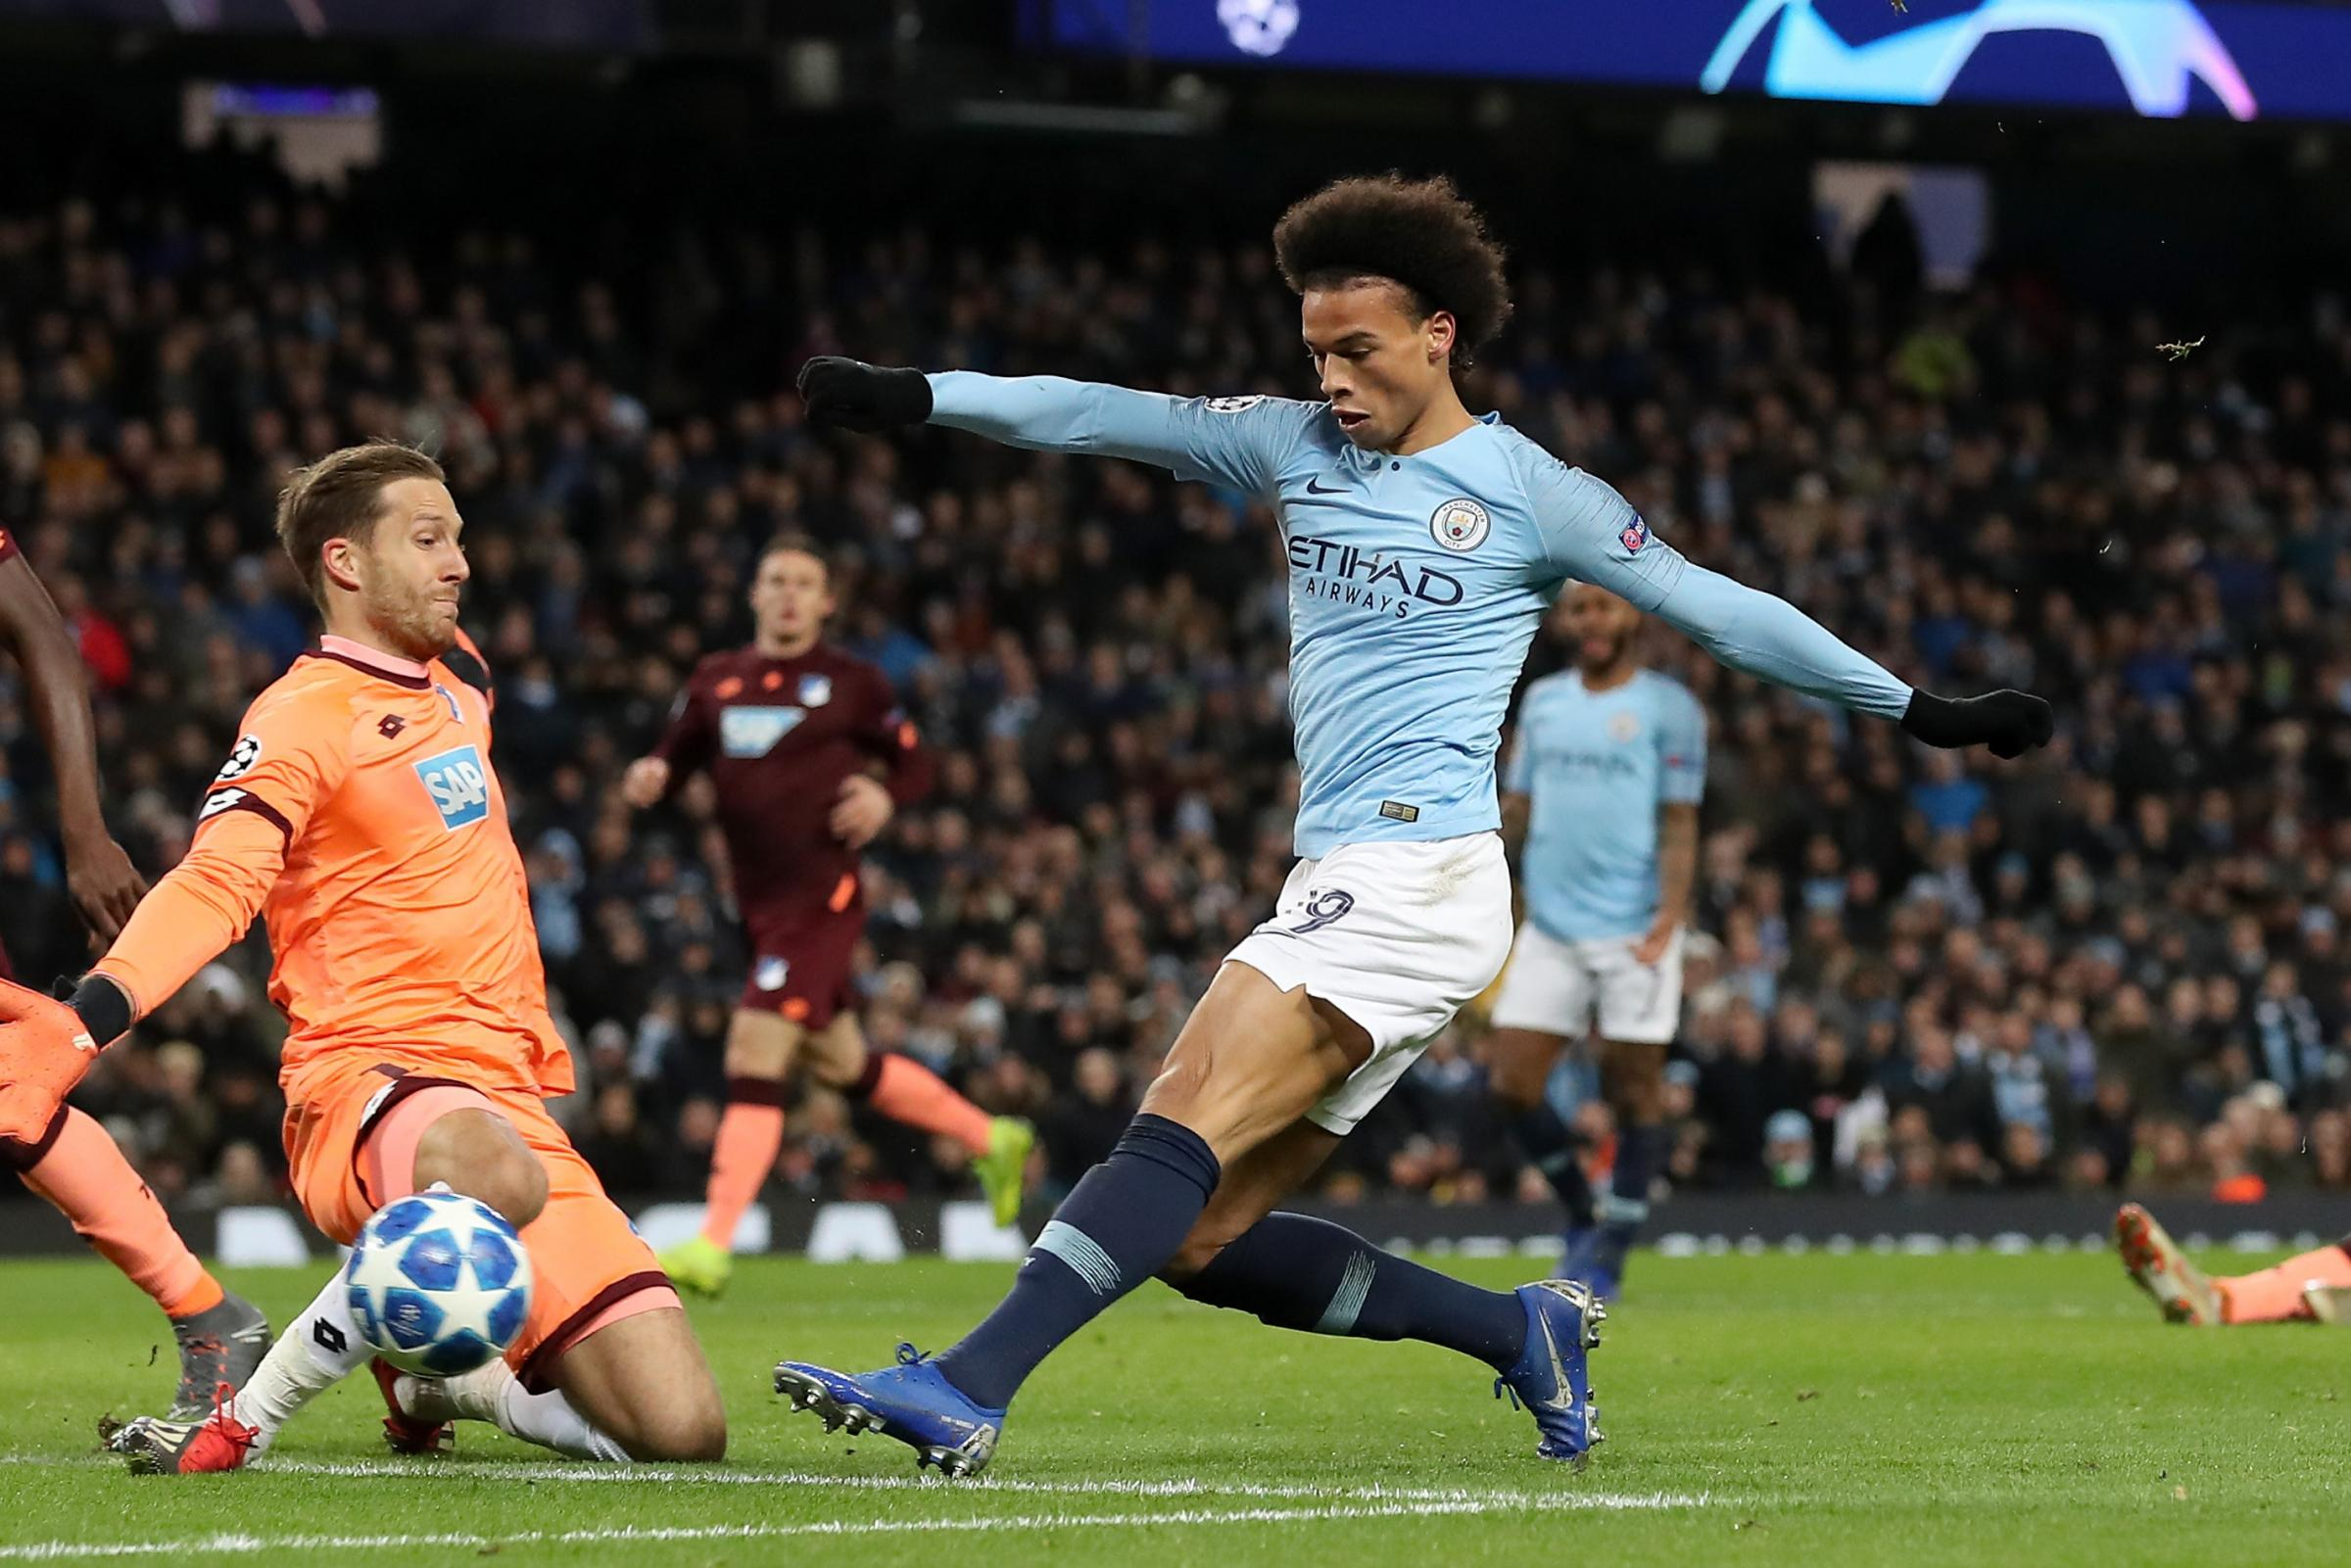 Leroy Sane's double against Hoffenheim ensured Manchester City won their Champions League group